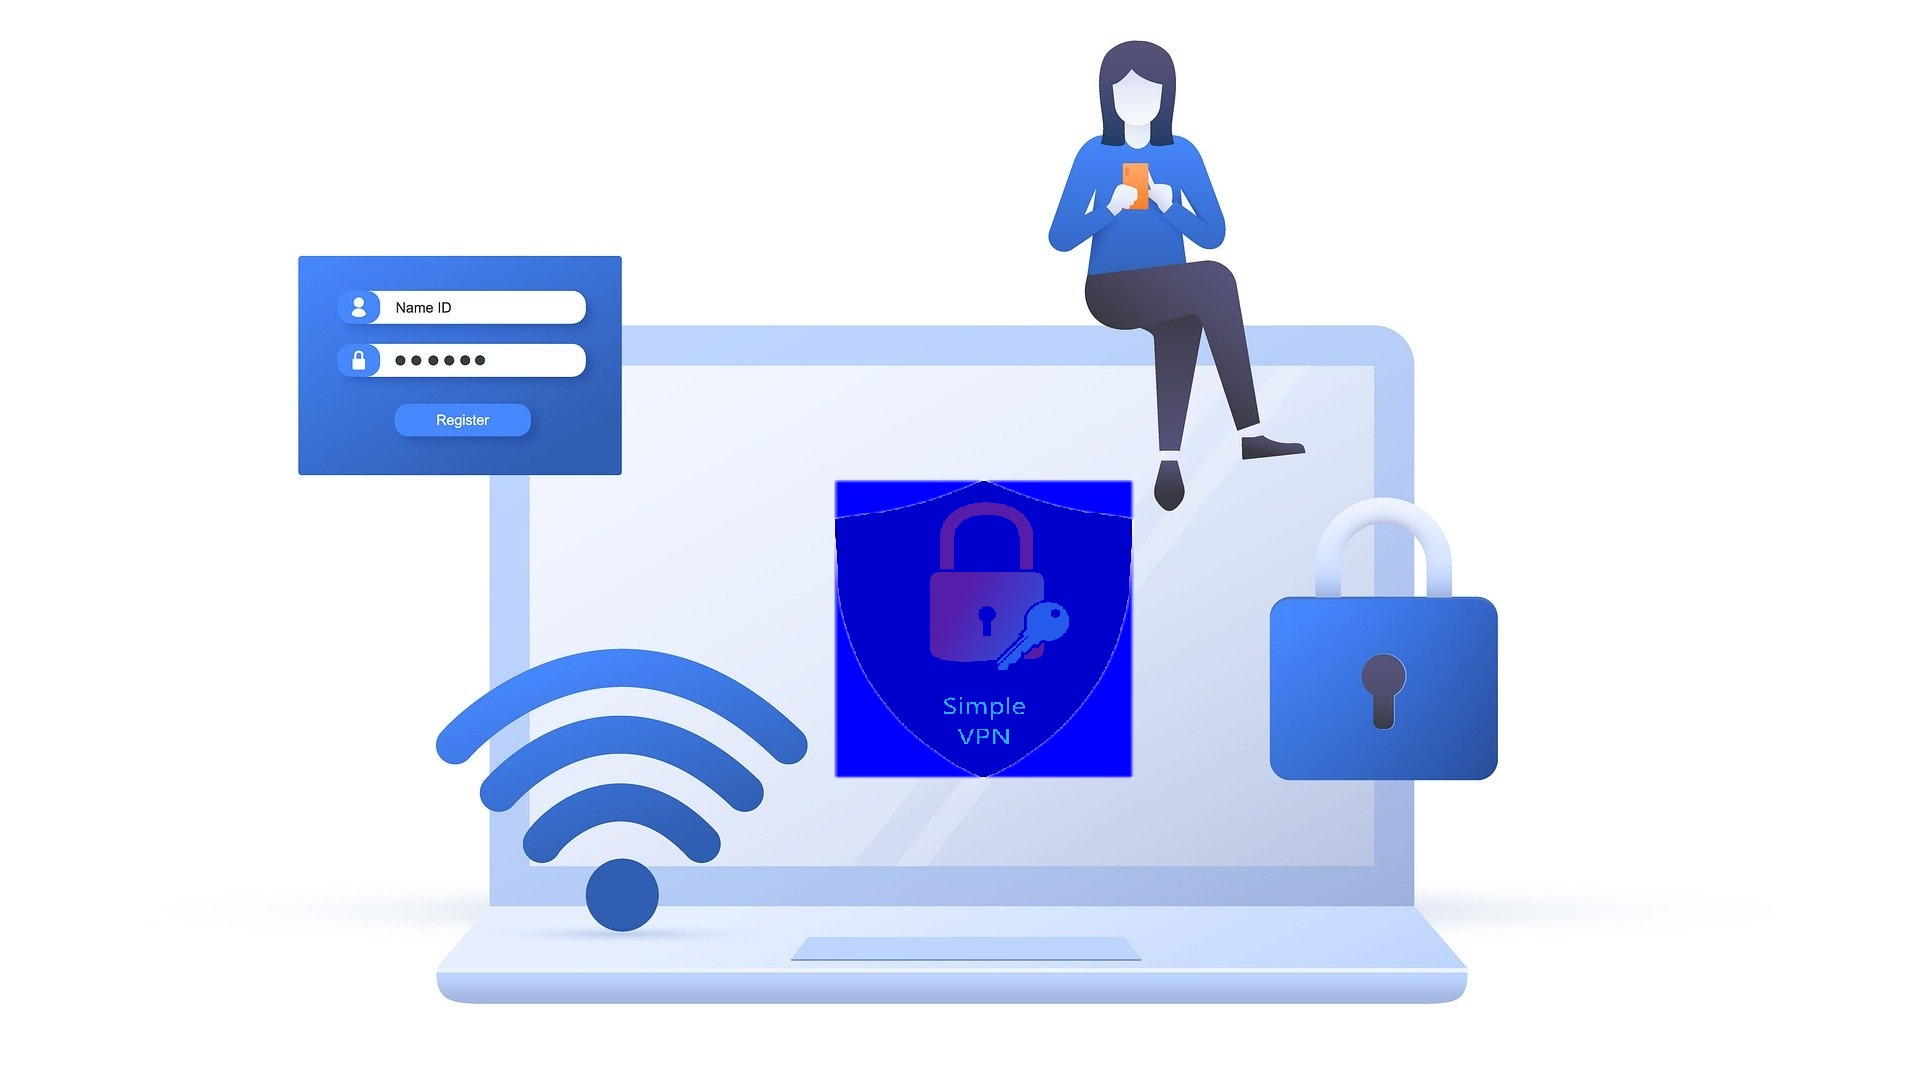 Simple Easy to use secure VPN